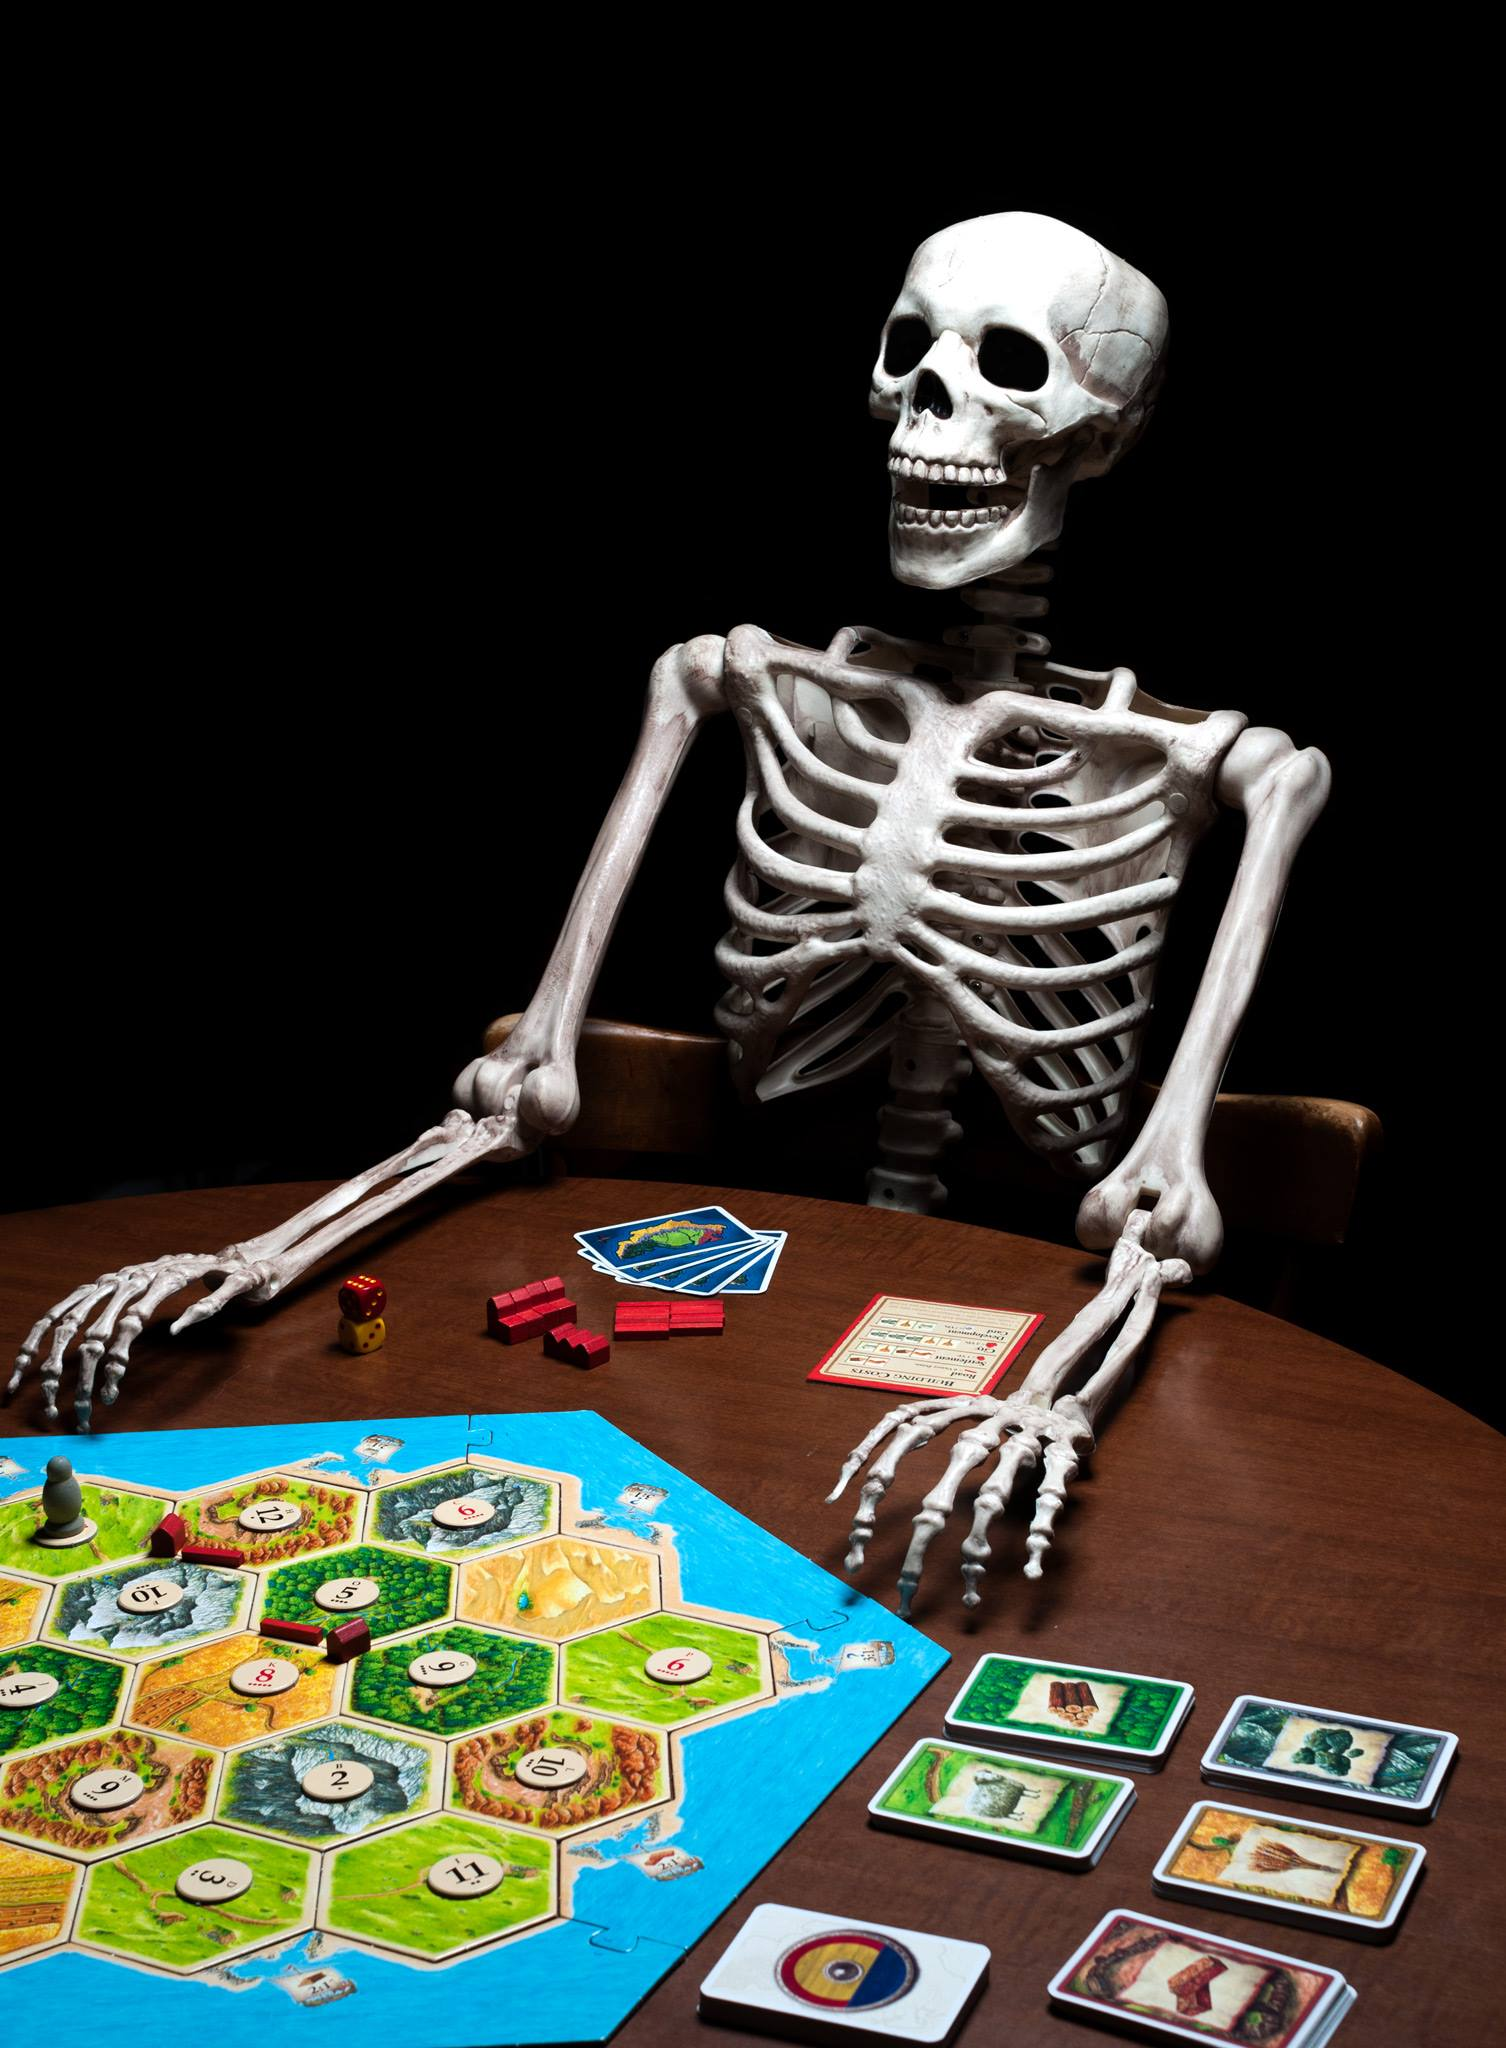 Skeleton playing Catan board game